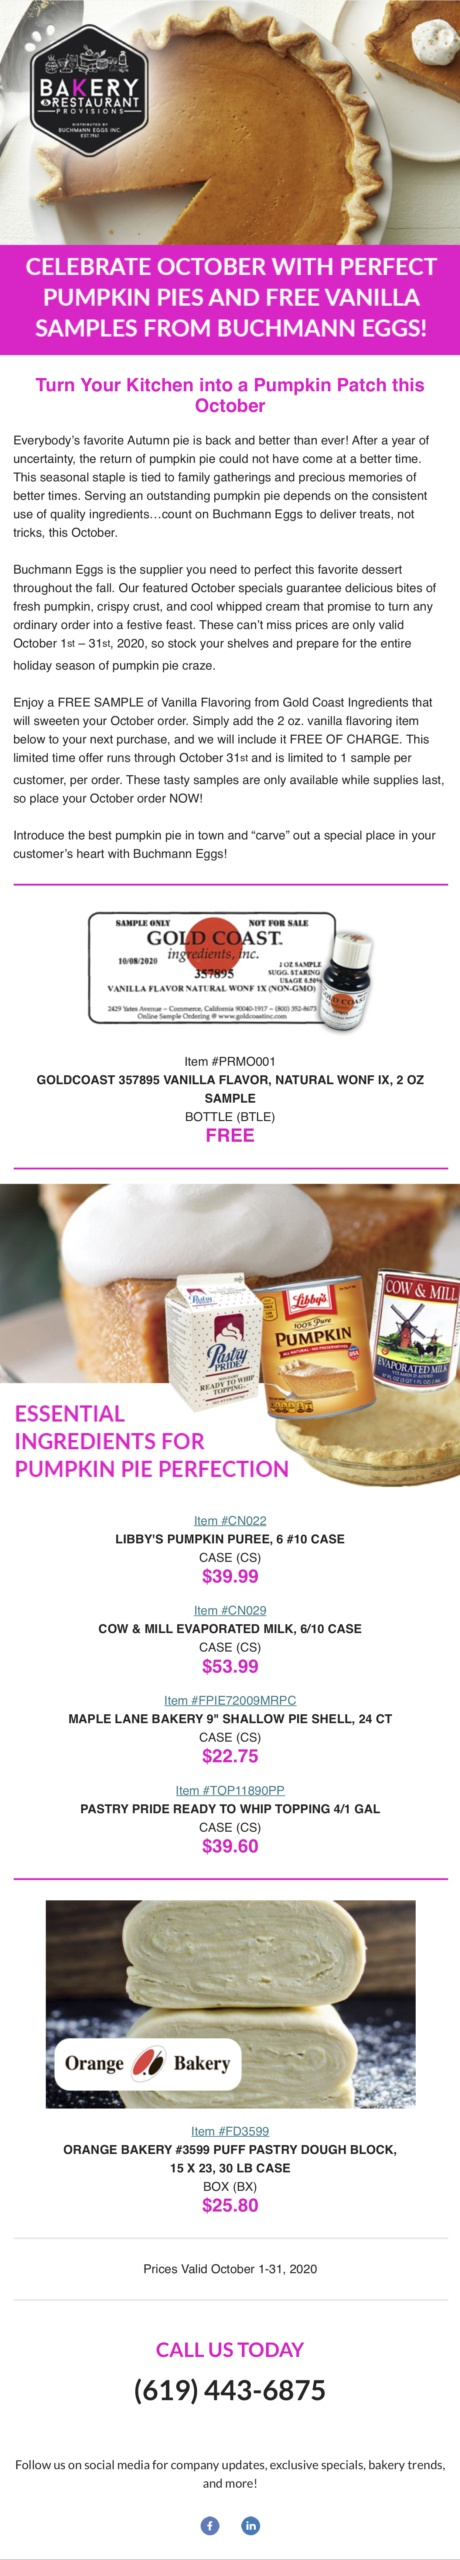 Celebrate October With Perfect Pumpkin Pies And Free Vanilla Samples From Buchmann Eggs!